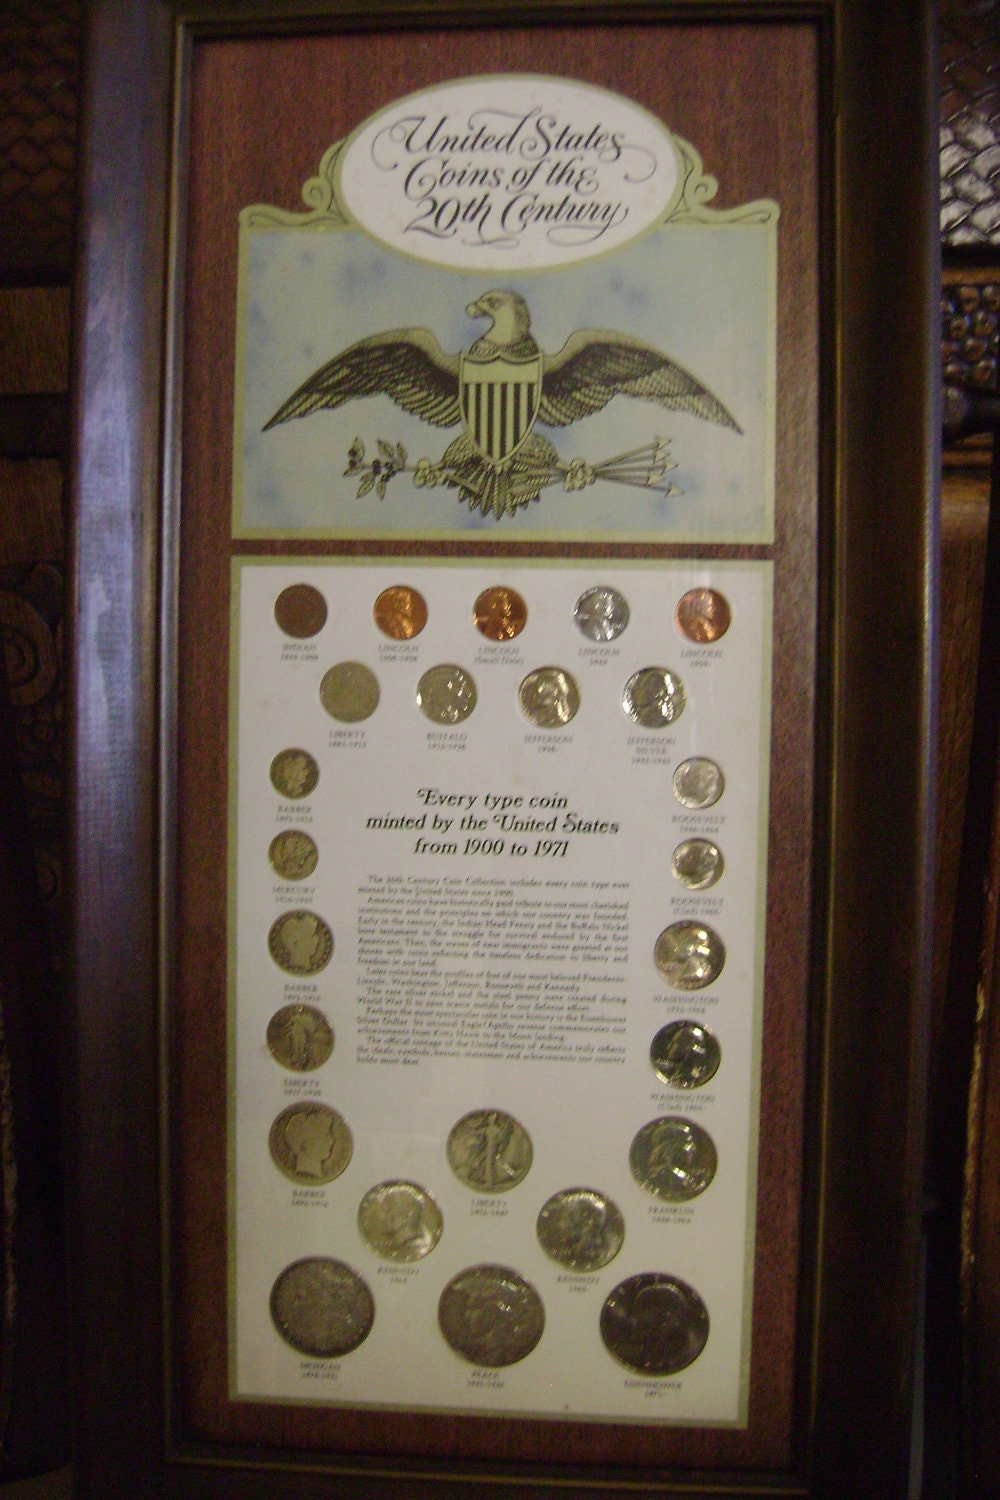 U S Coins Of The 20th Century 1900 1971 By Aliceinplunderland